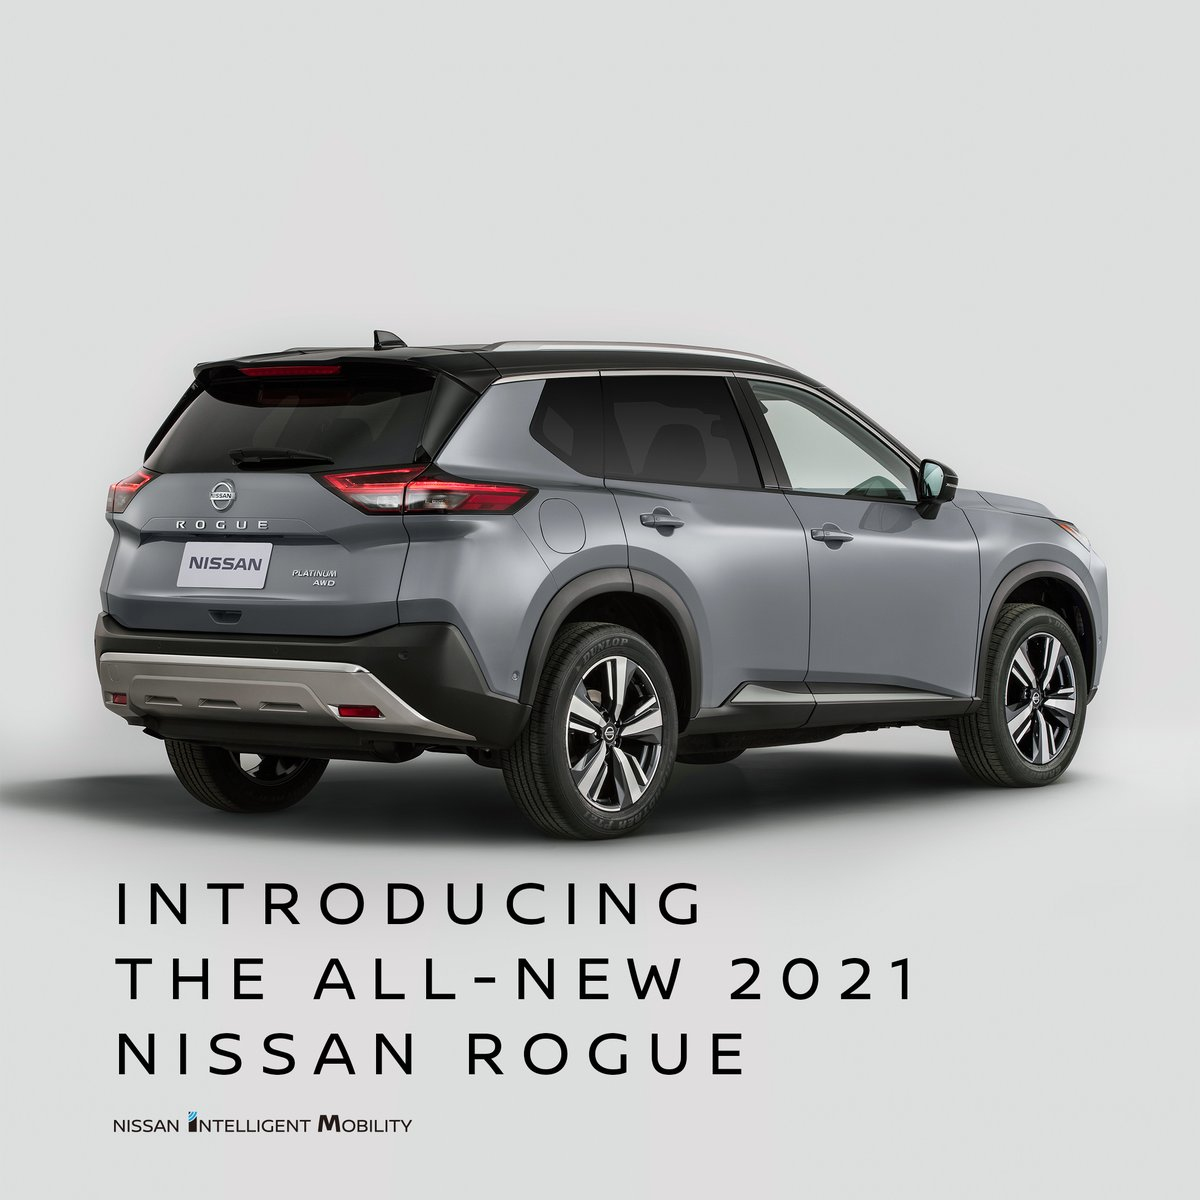 Merry Christmas to Me, the All-New Rogue. Wireless Apple CarPlay, 9-inch center screen and class-exclusive Tri-Zone Climate Control.  #RogueGoneRogue #NissanRogue2021